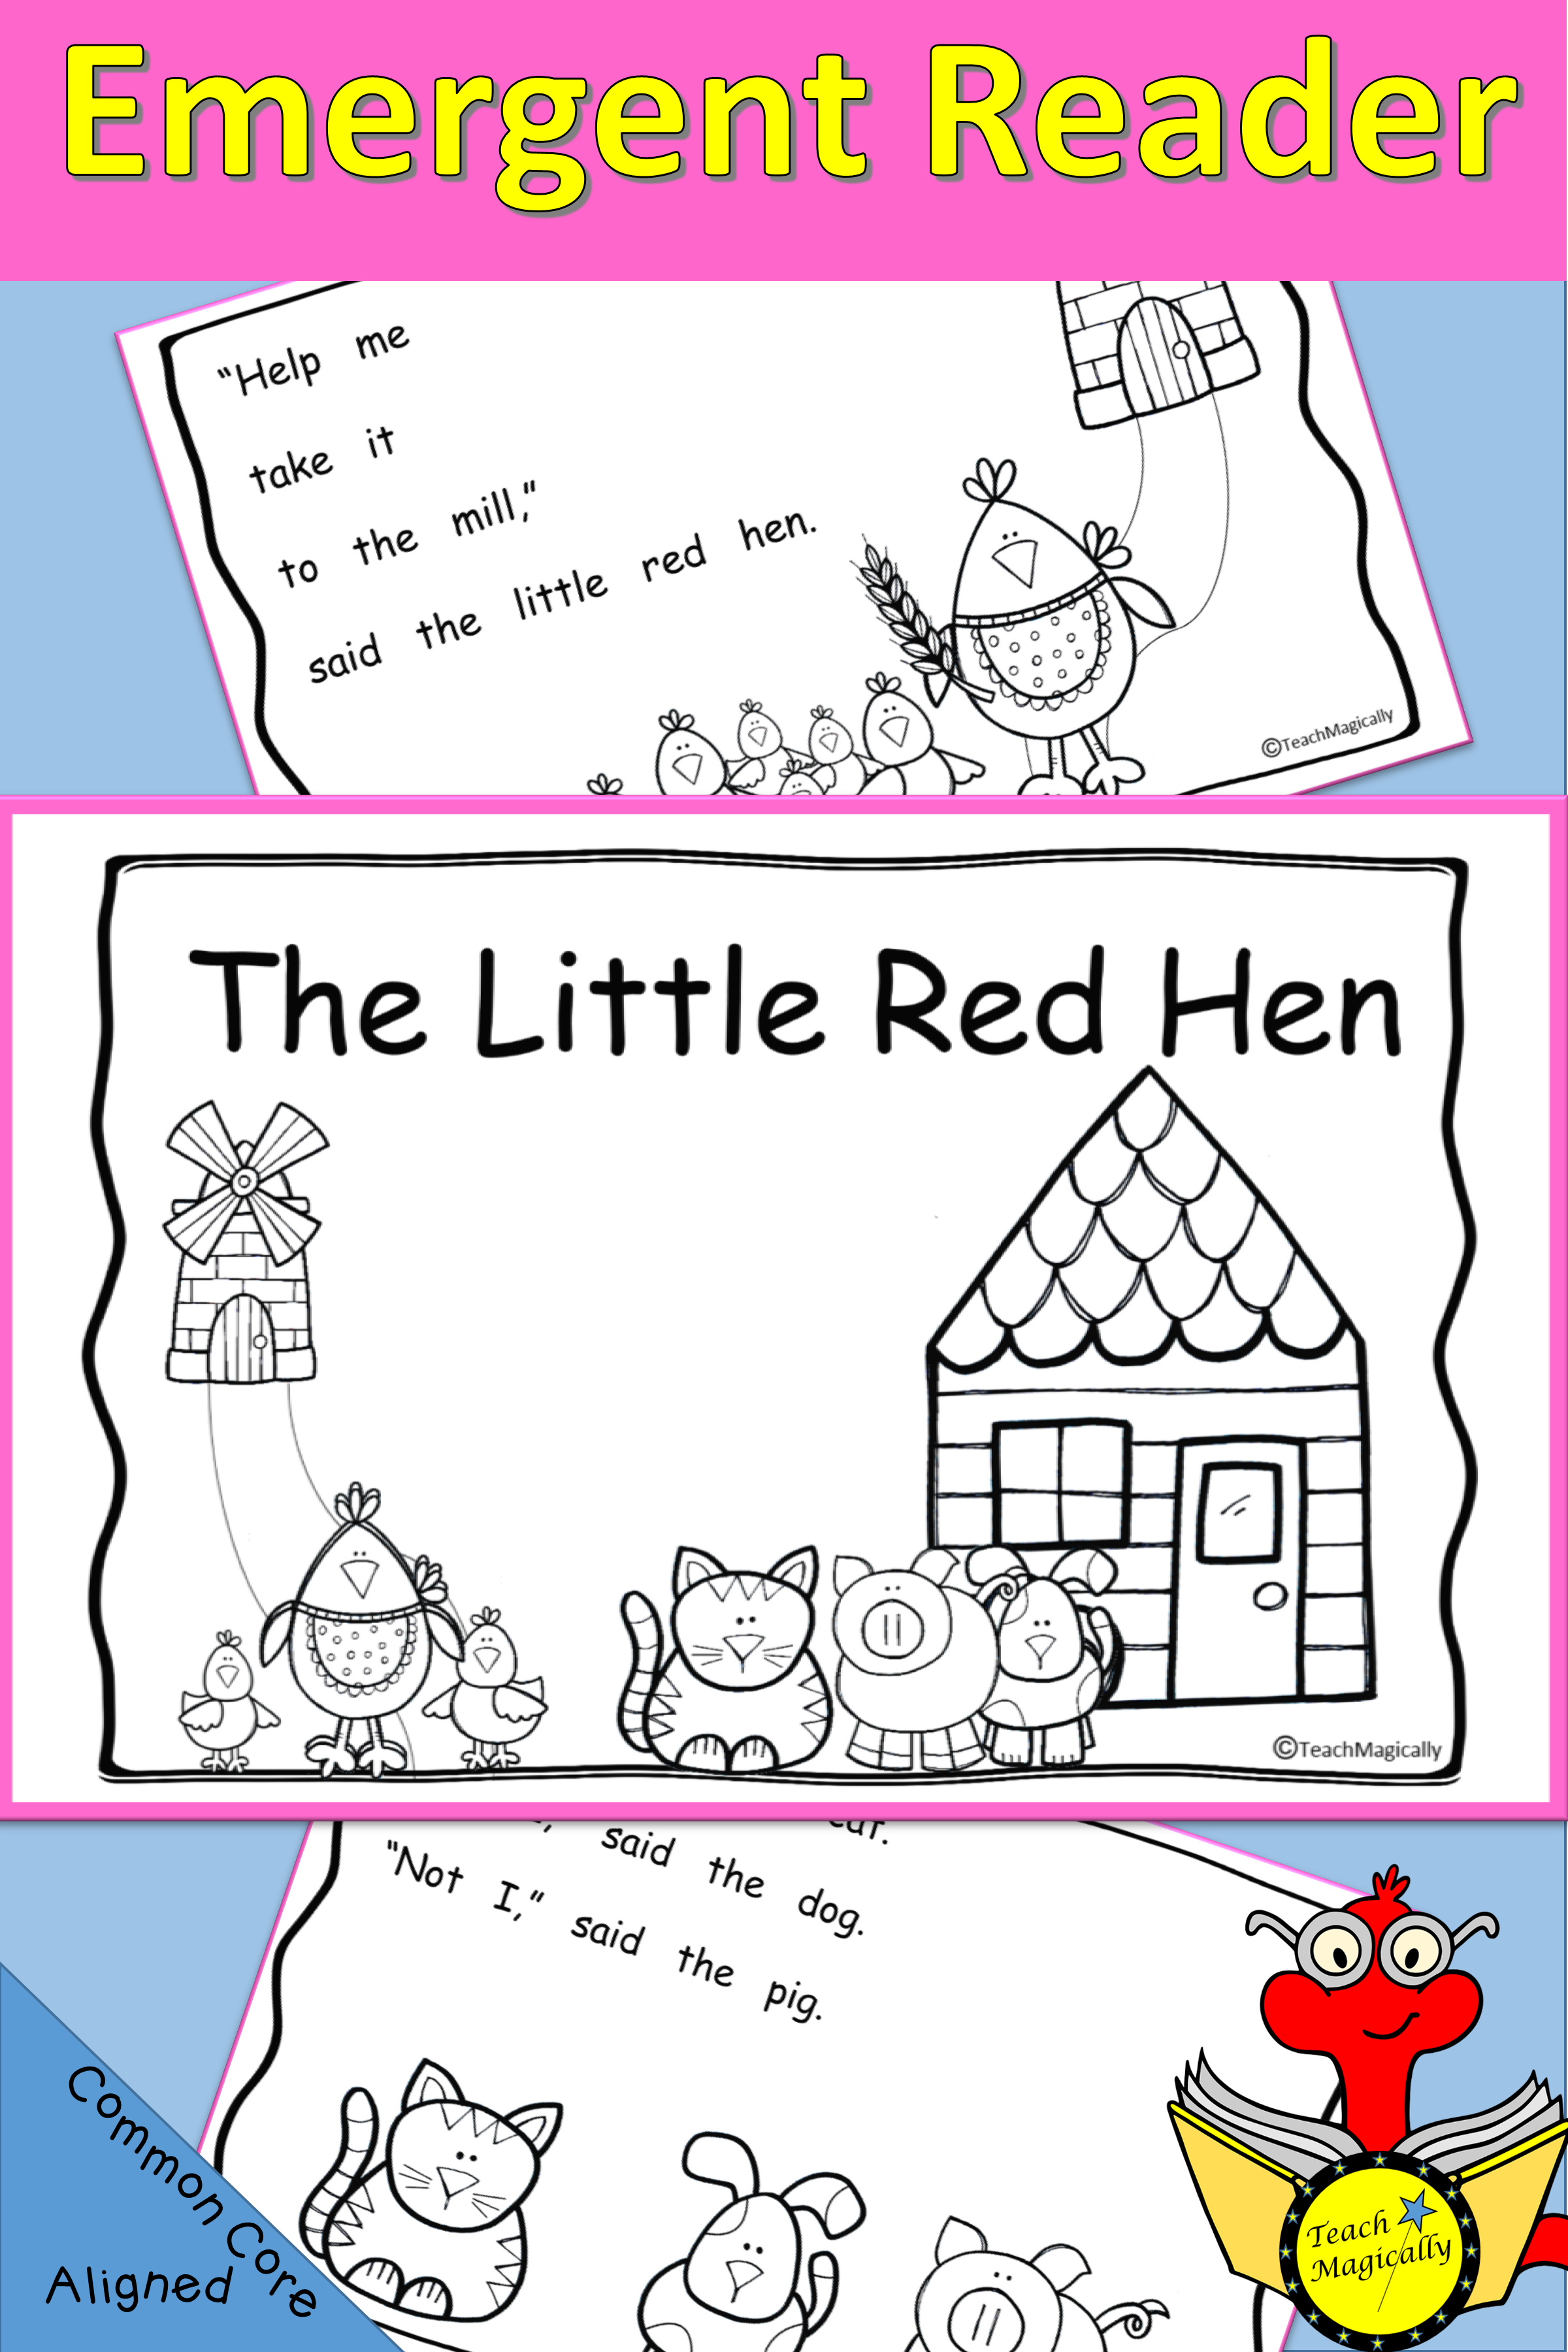 Emergent Reader Book The Little Red Hen Folktale